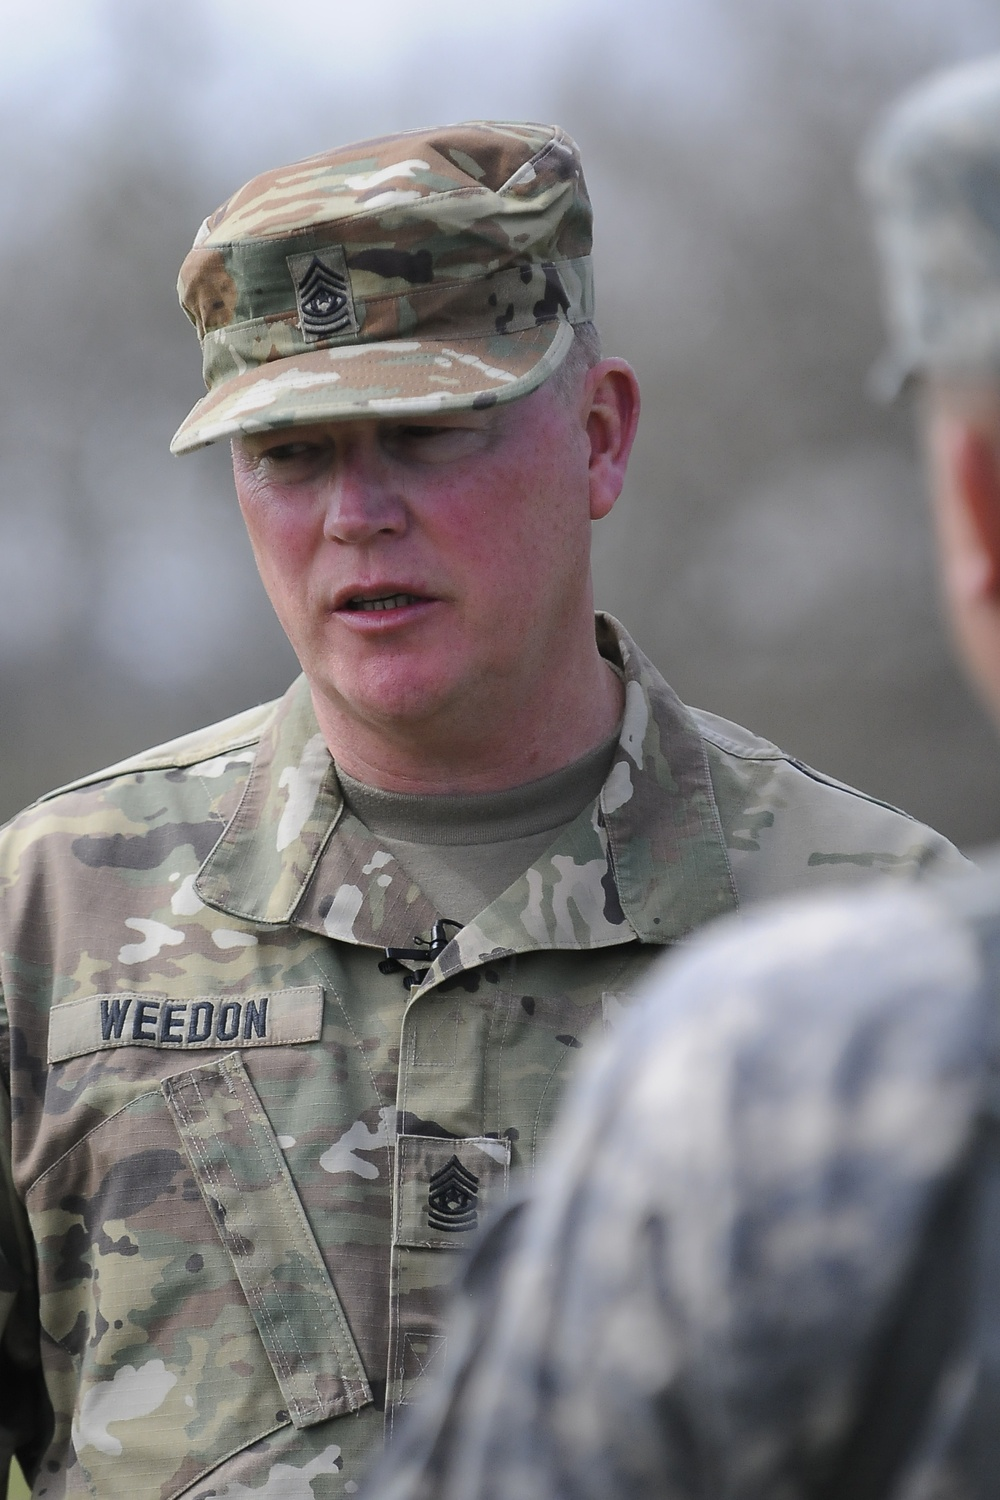 Connect, understand, motivate: Command Sgt. Maj. Weedon's life as a student of leadership